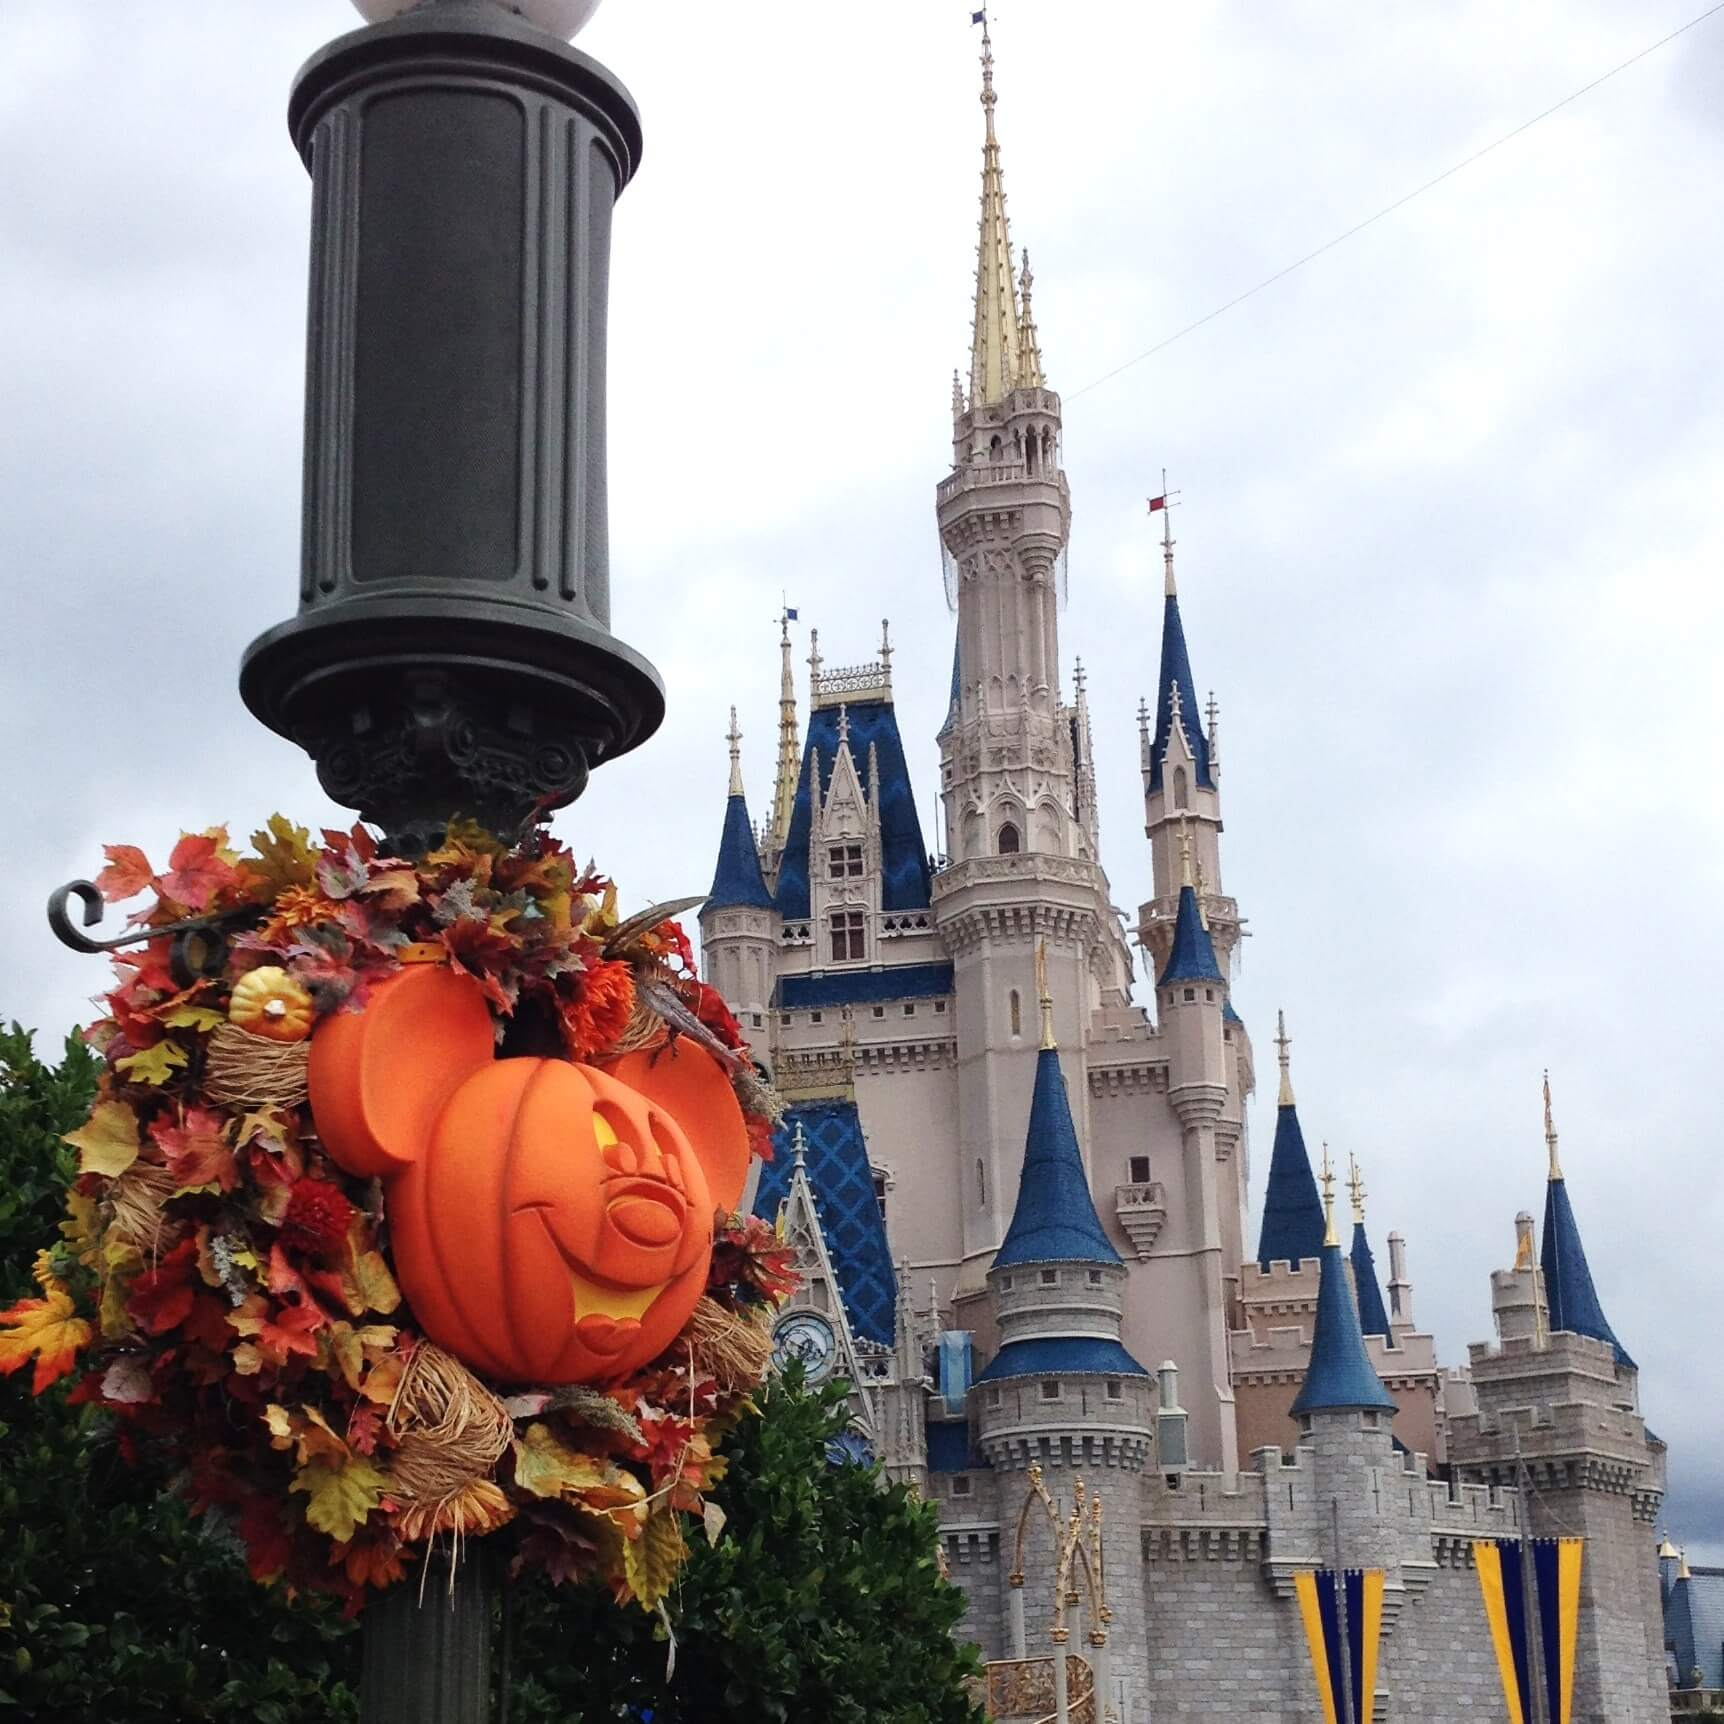 fall wreath with mickey mouse pumpkin in front of cinderella's castle